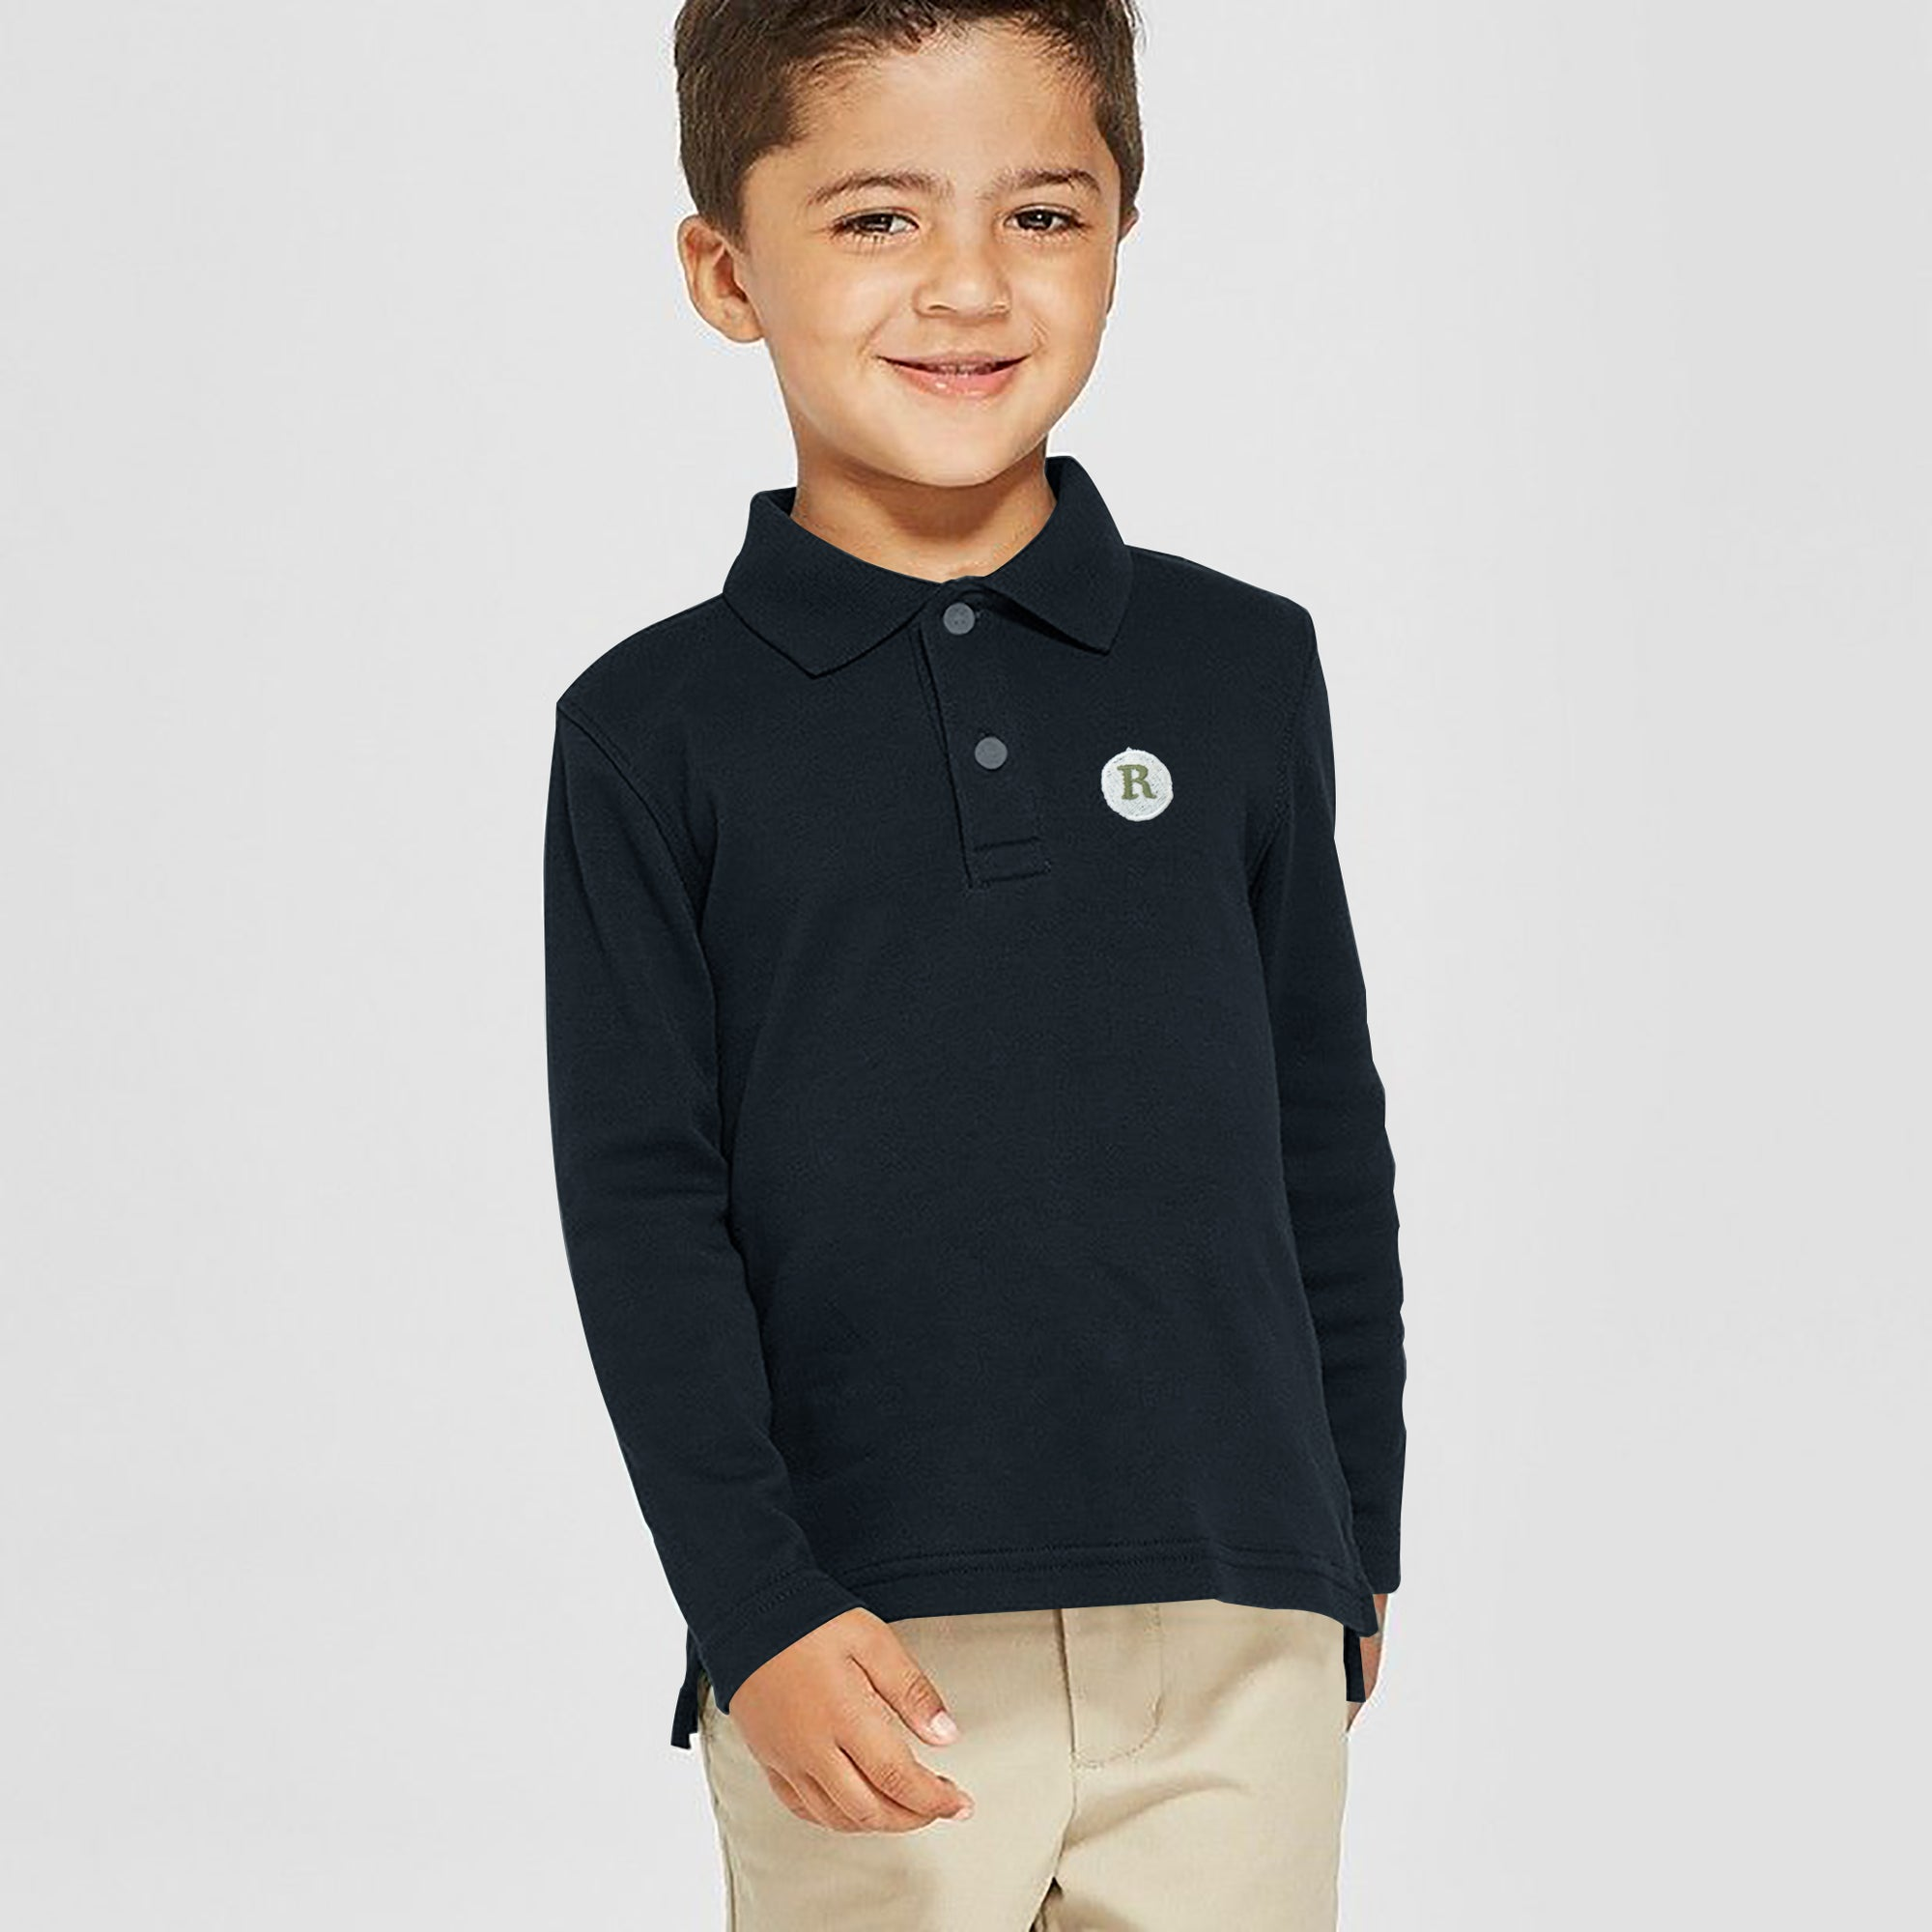 Next P.Q Long Sleeve Polo Shirt For Kids-Dark Navy-SP2837